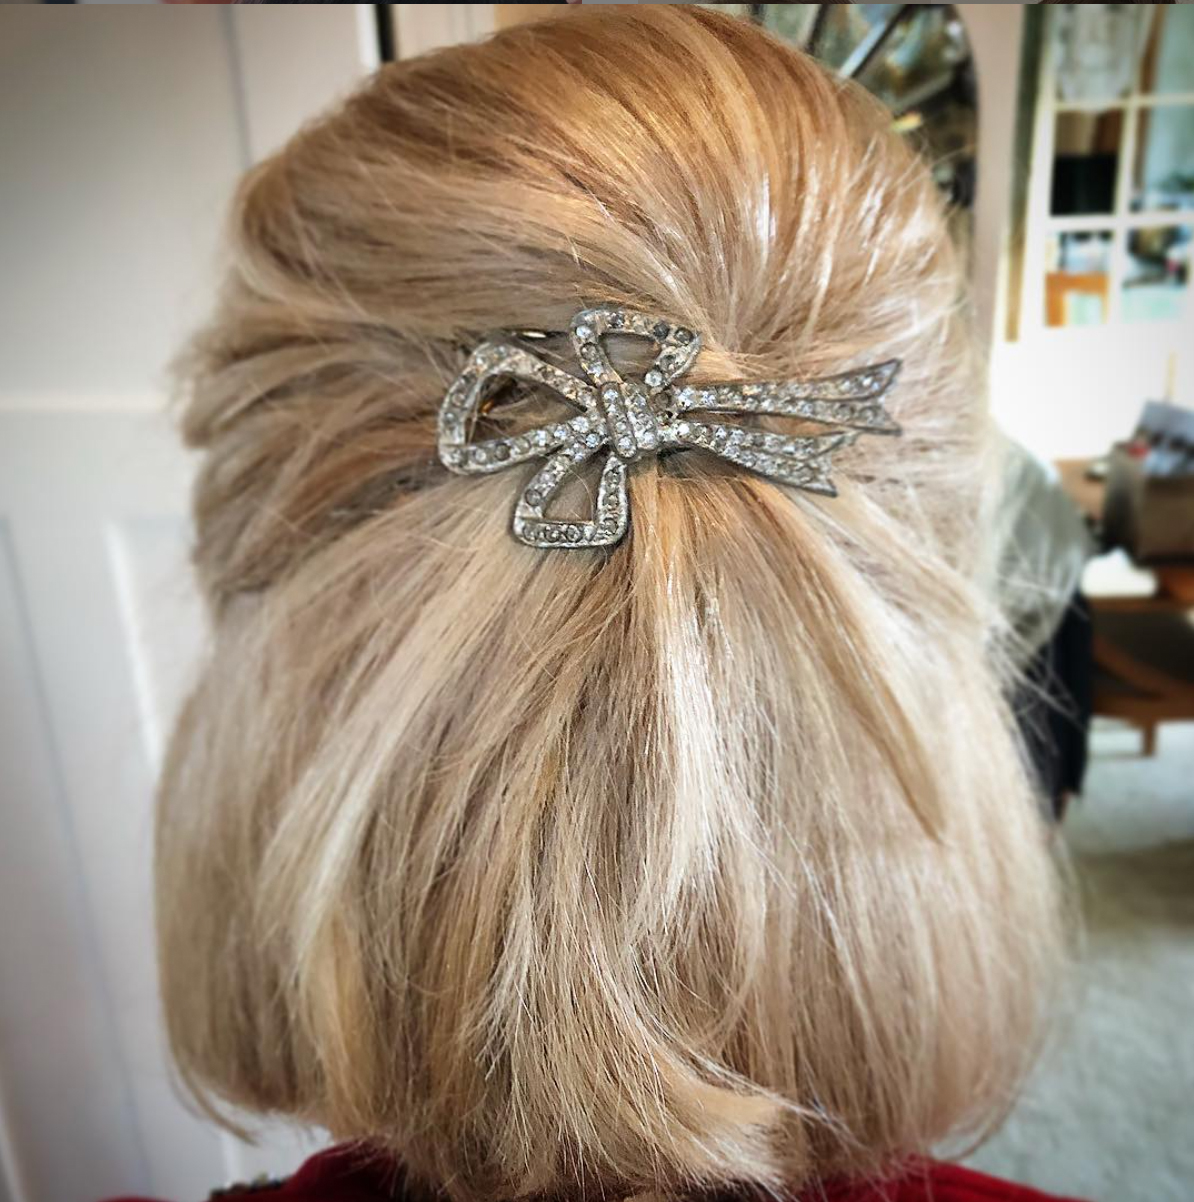 Use a Barrette